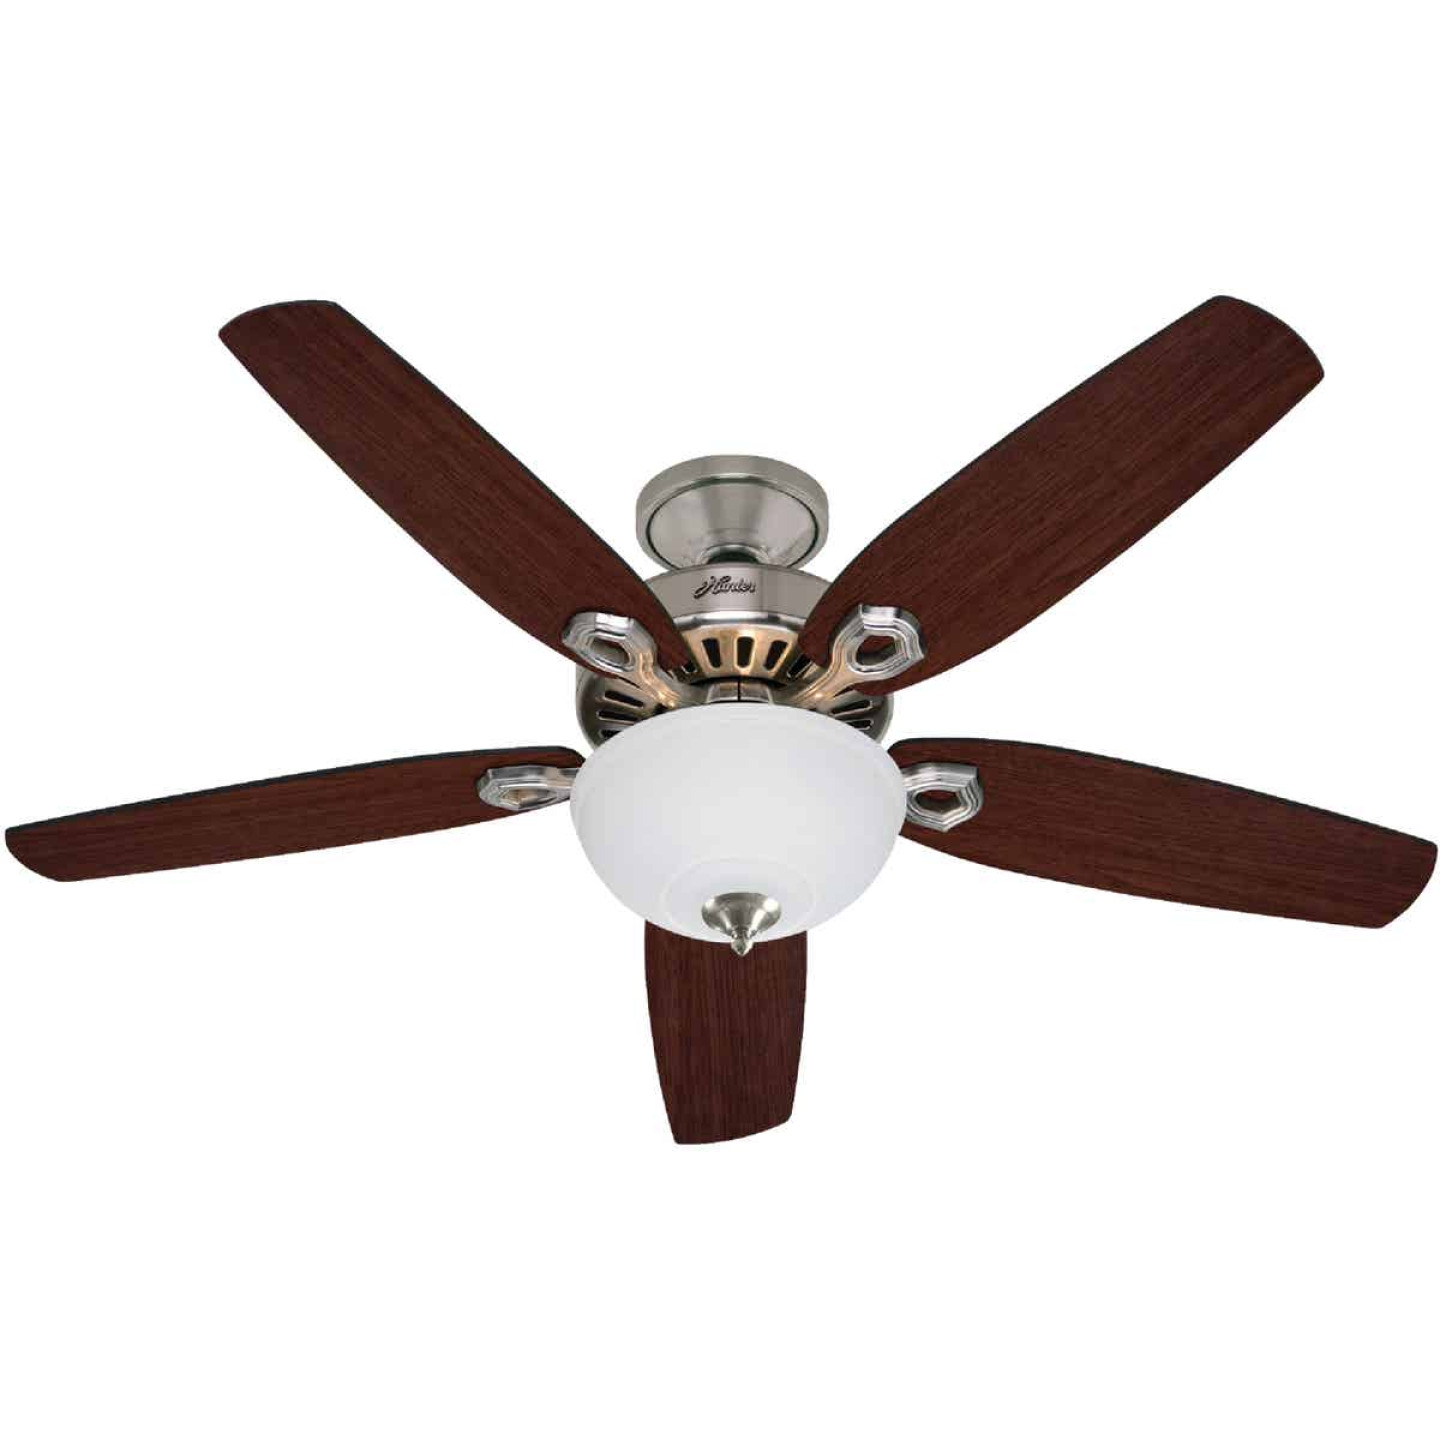 Hunter Builder Deluxe 52 In. Brushed Nickel Ceiling Fan with Light Kit Image 1